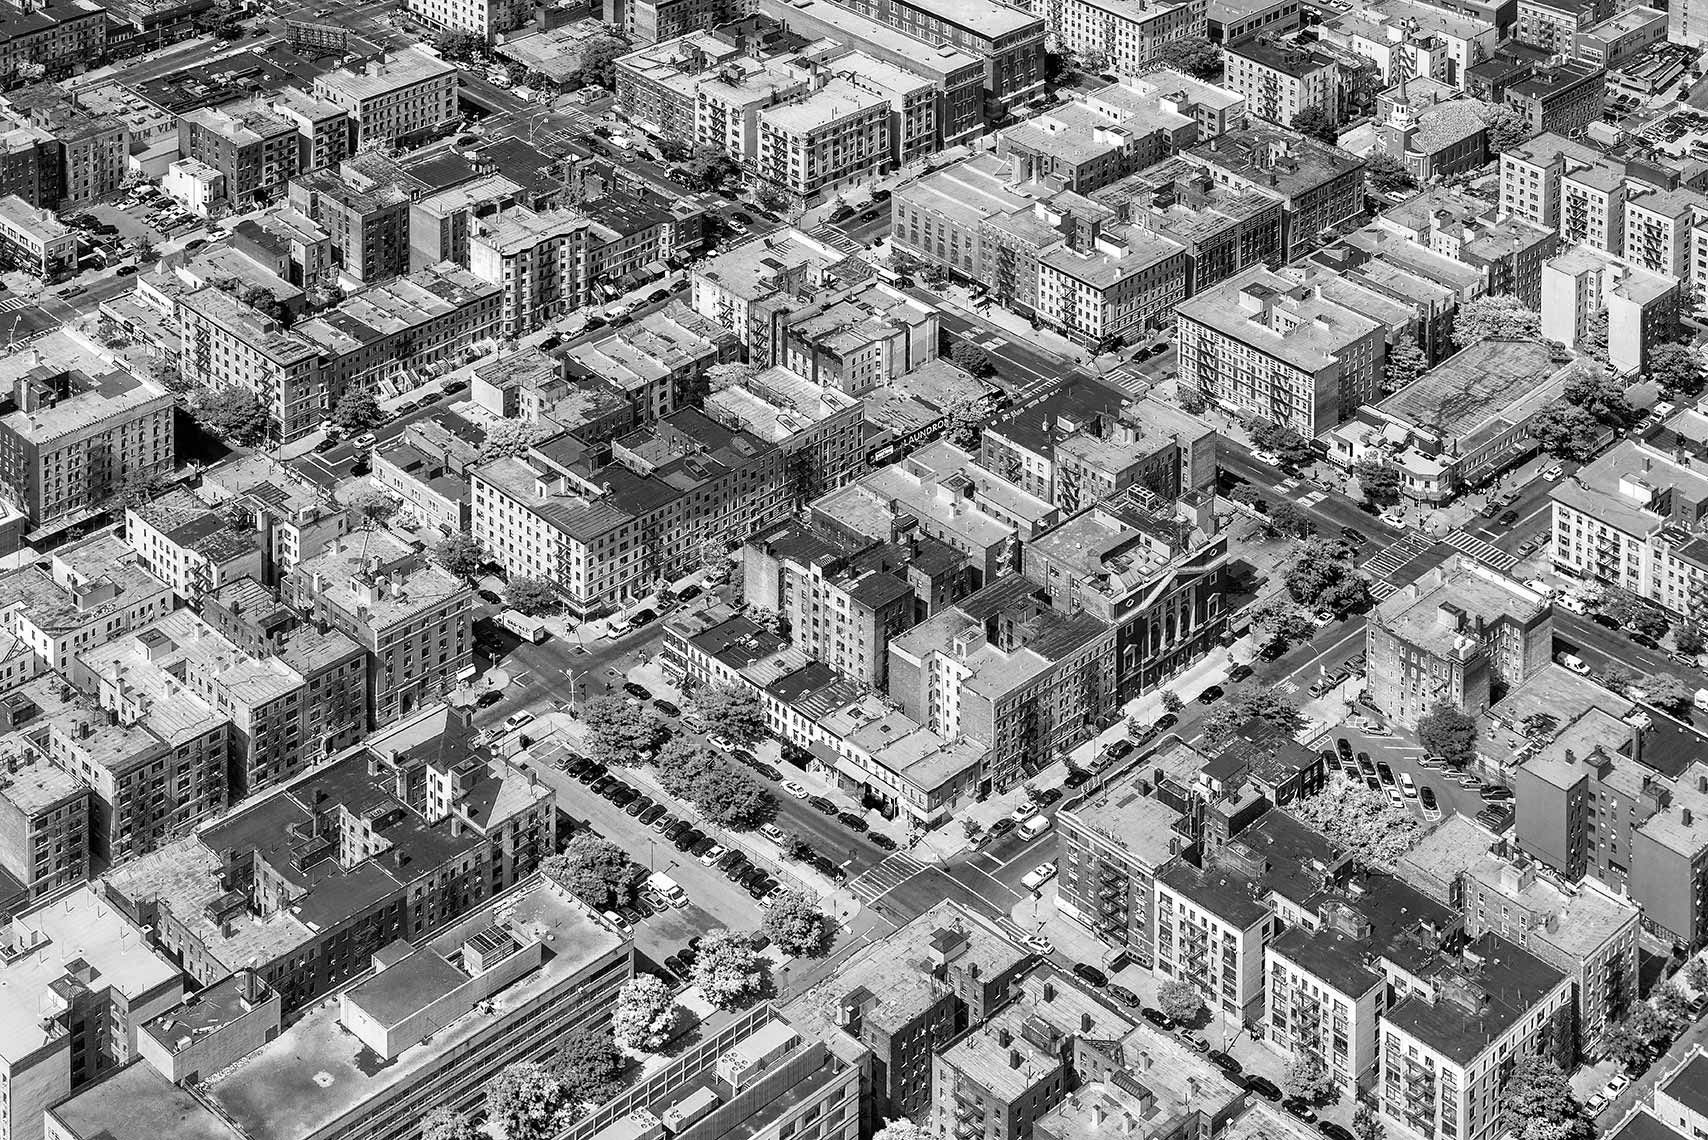 Apartments Aerial Landscape Architecture NYC New York City Helicopter